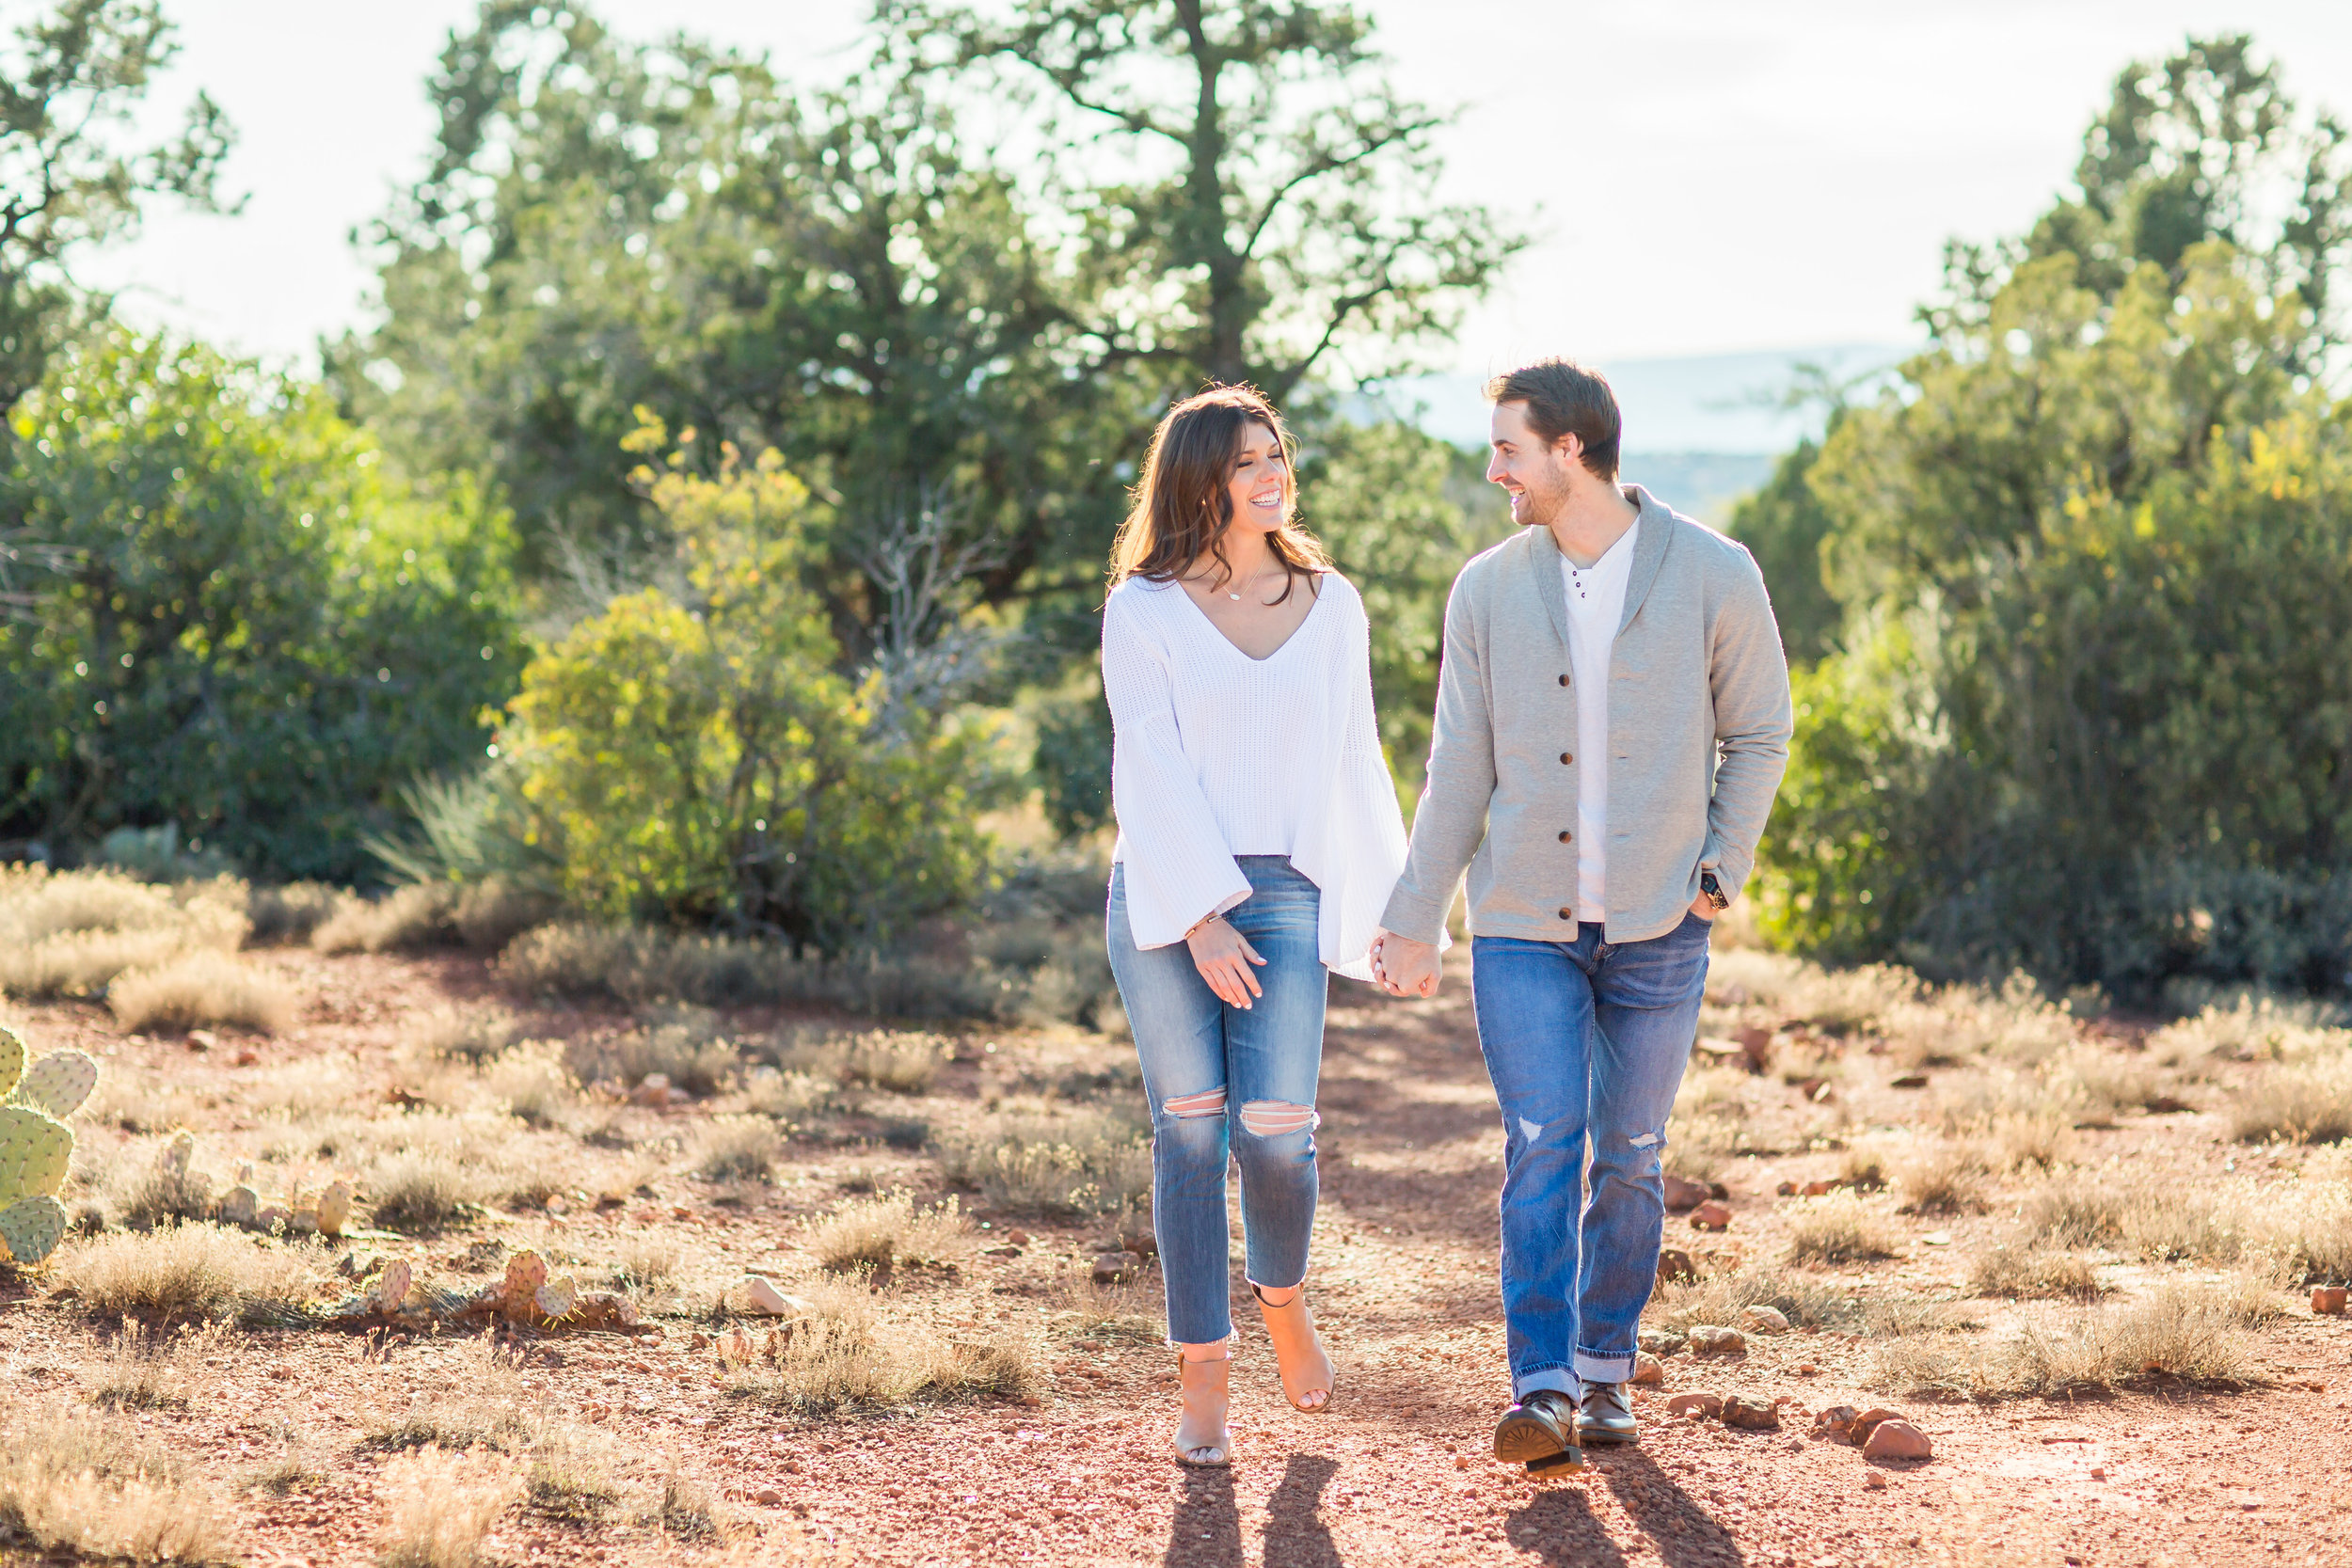 Sedona Red Rock Arizona Wedding Photographer